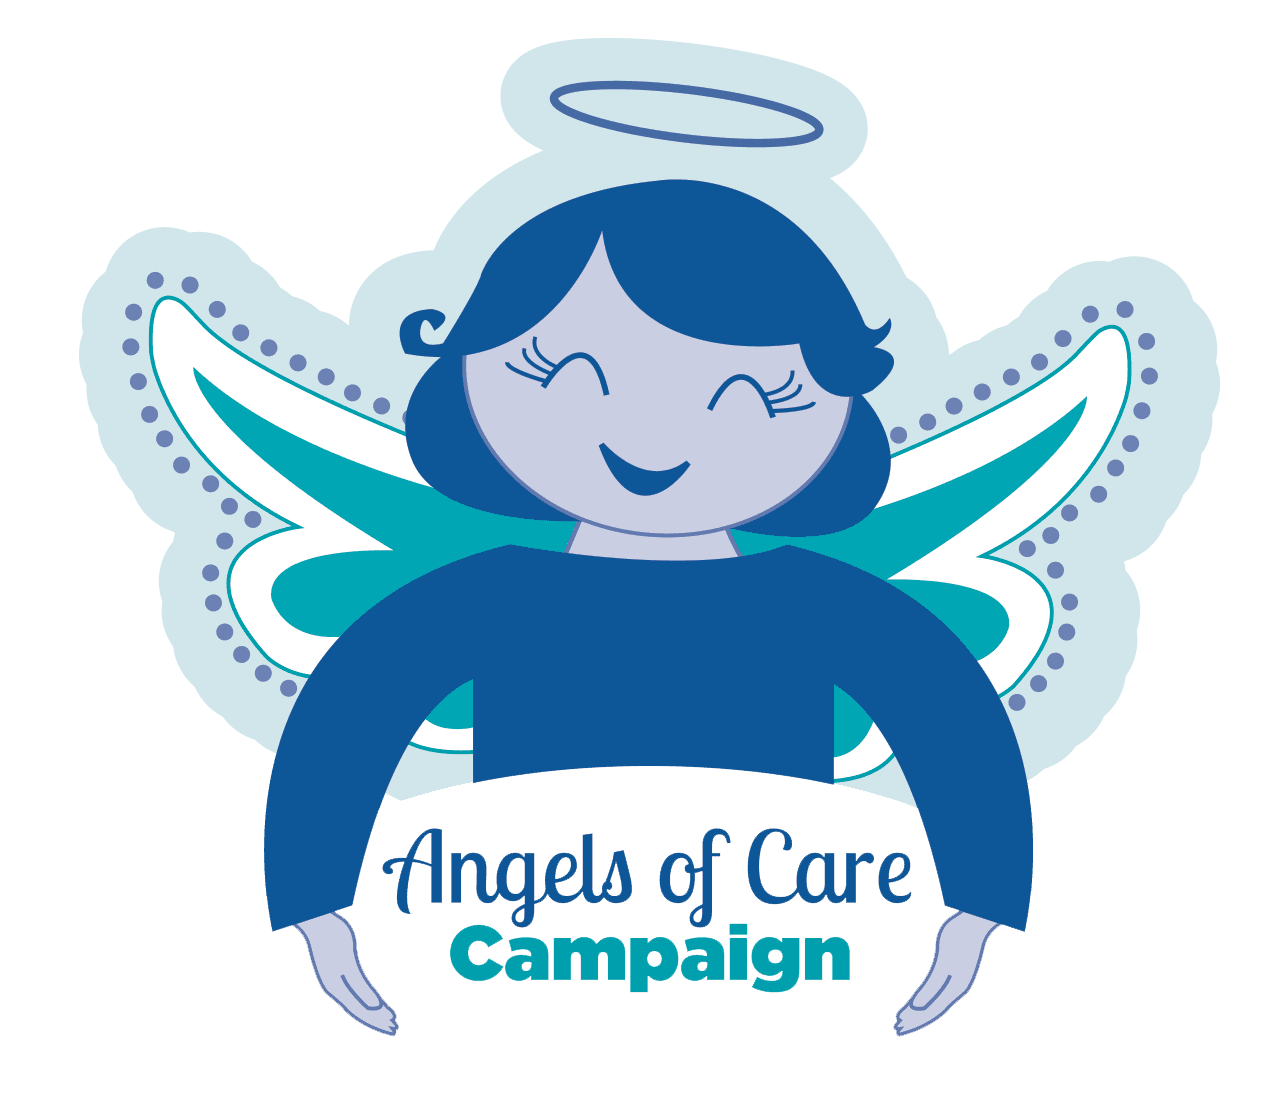 Angels of Care Campaign